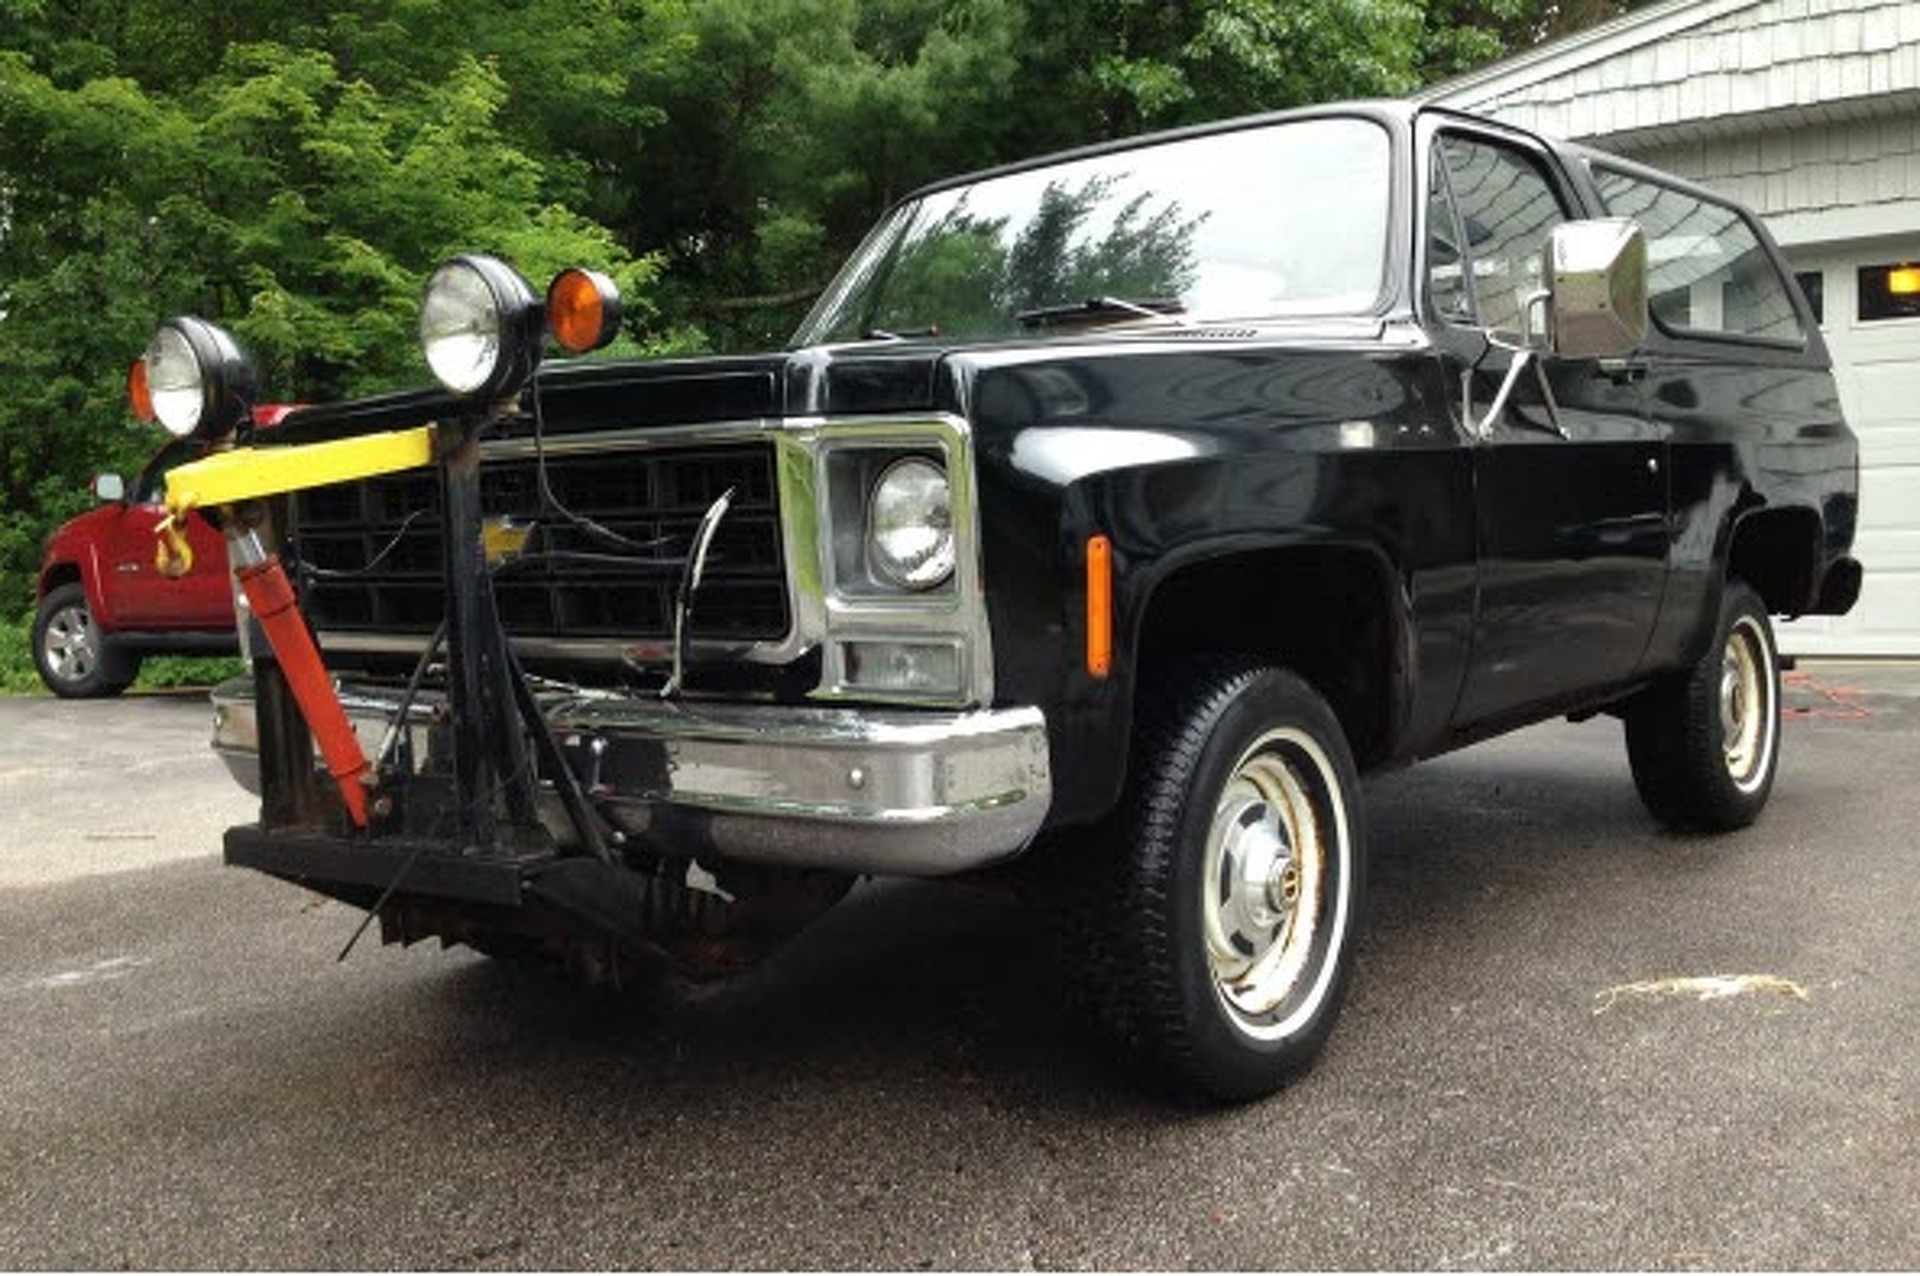 Project Chevy Blazer Update: Incontinent No More